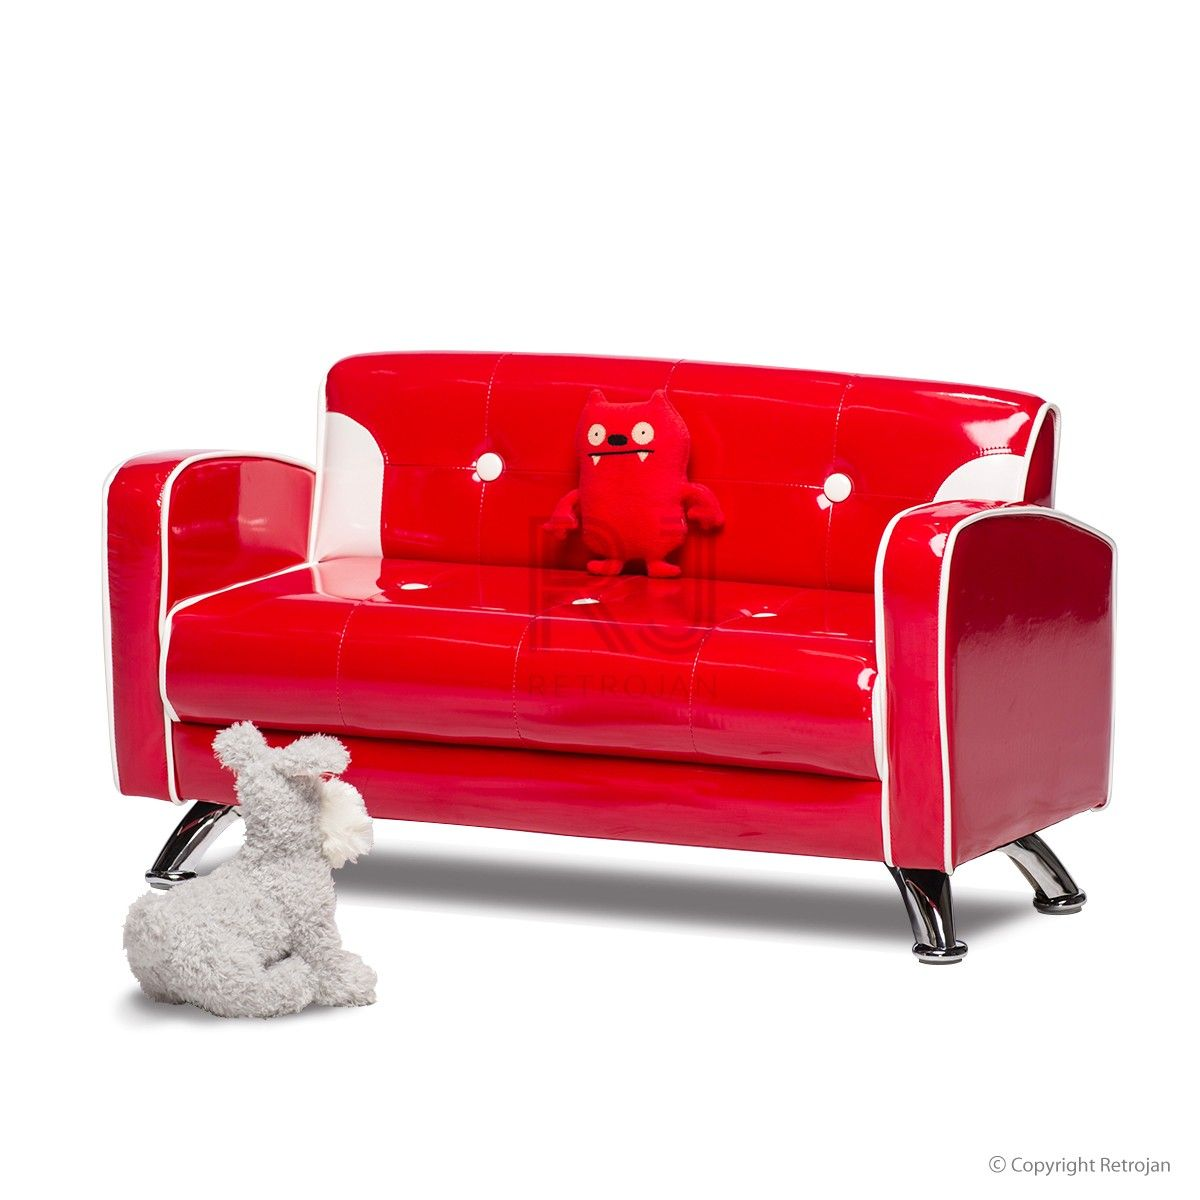 Buy Ginny Kids Sofa (Fire Engine Red) Online | Kids Furniture   Retrojan